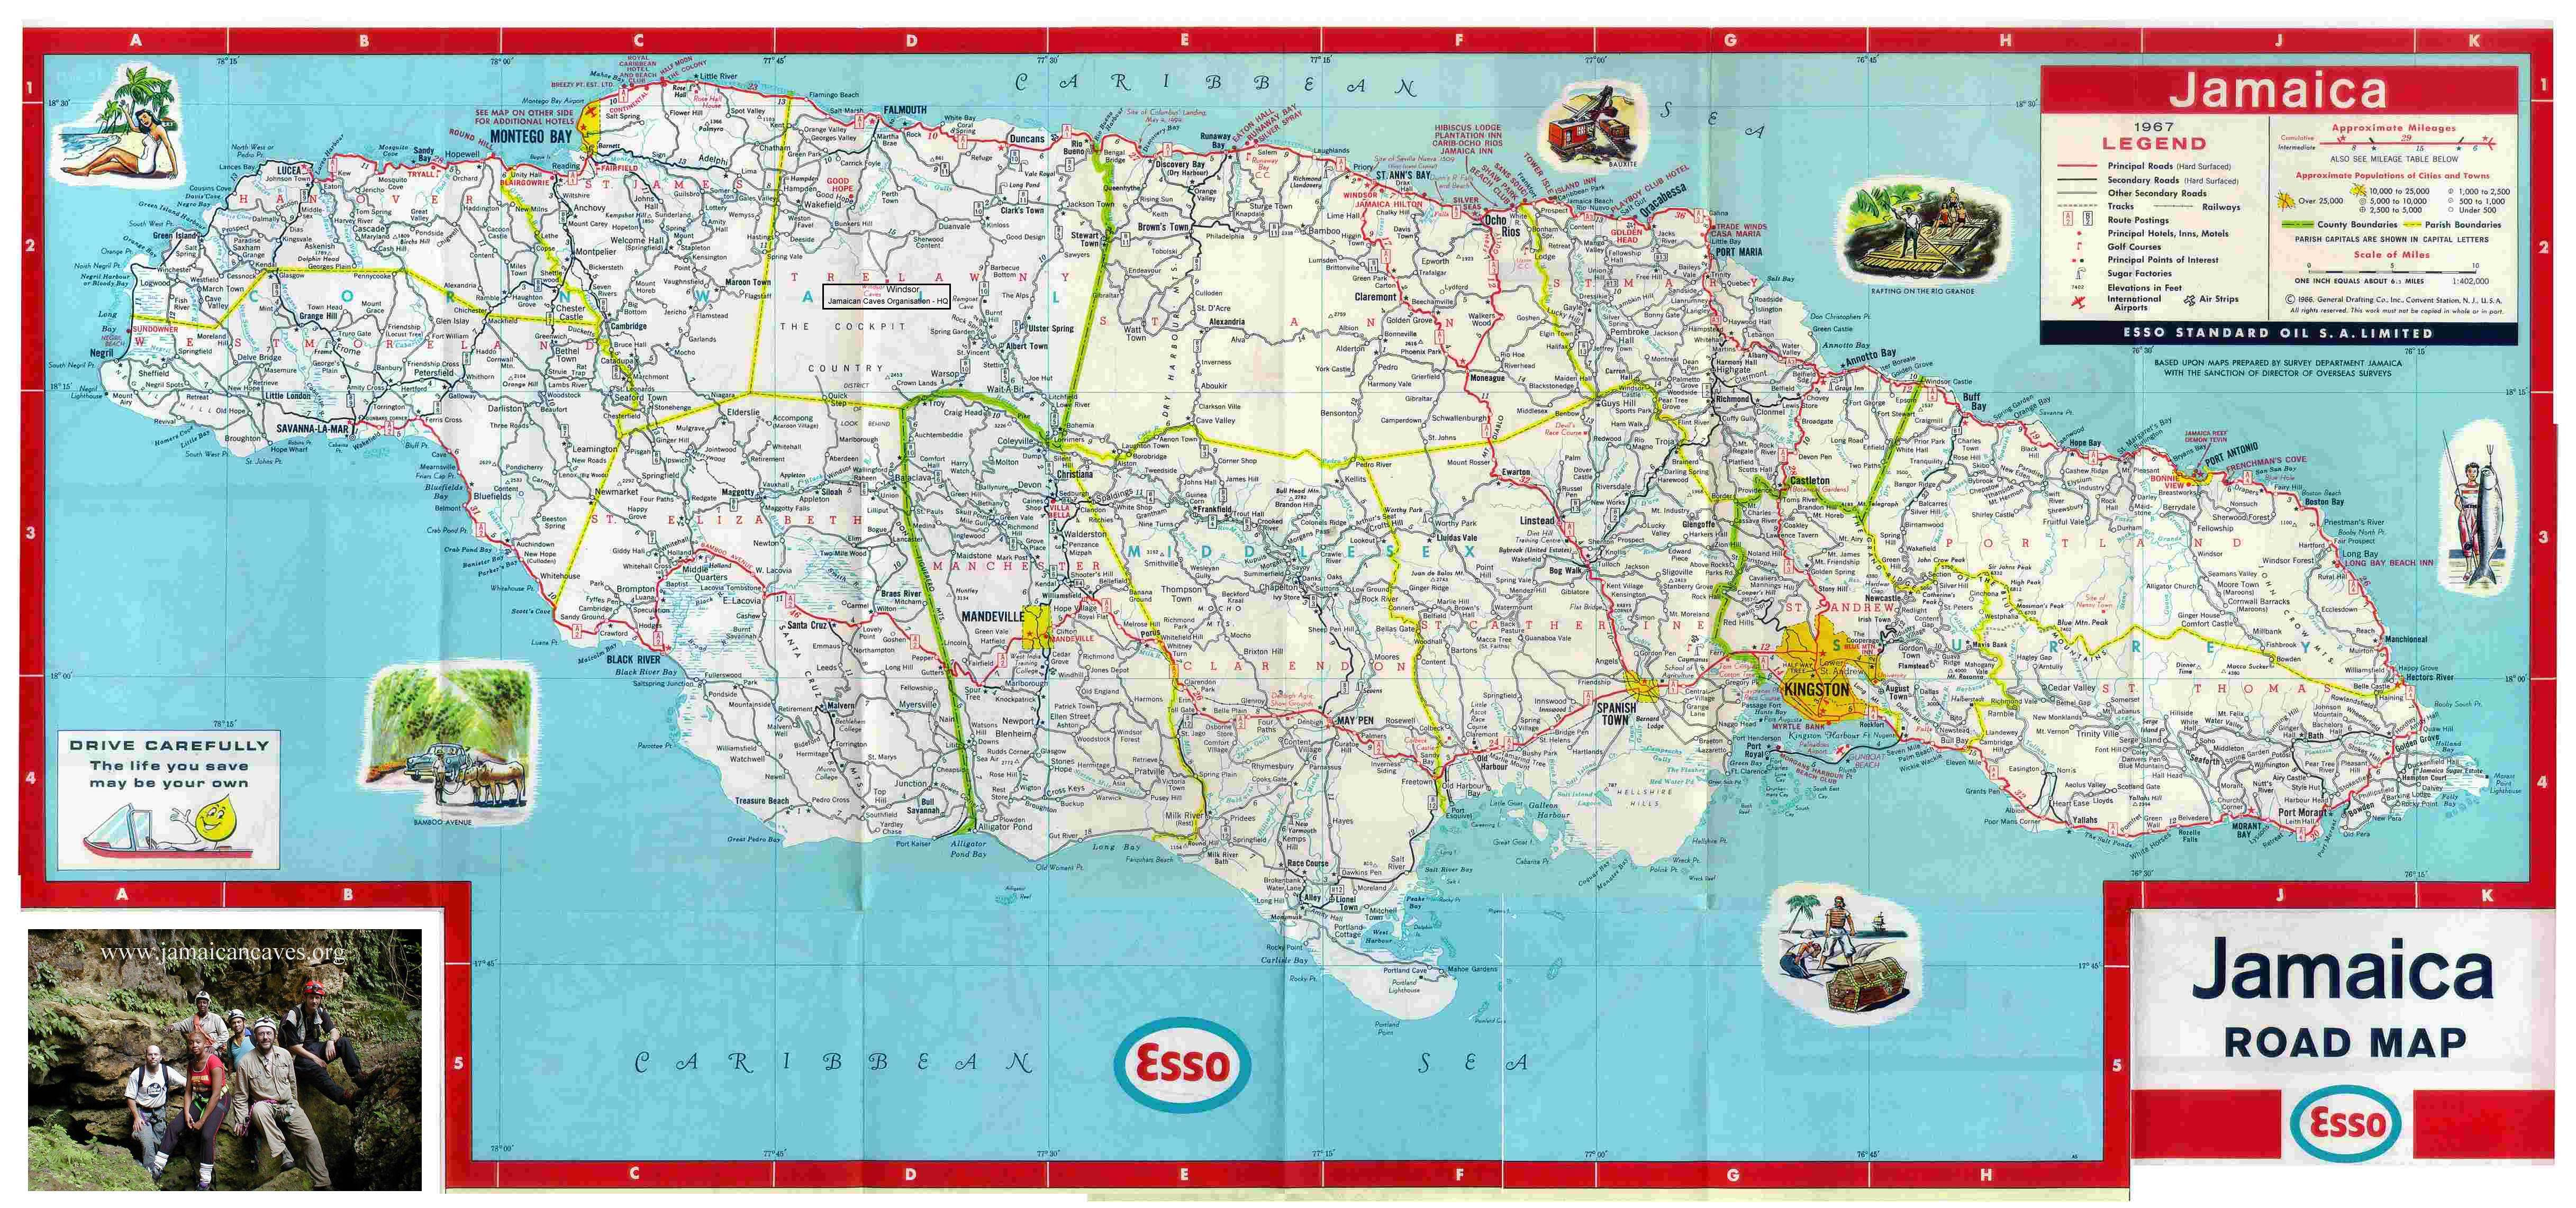 Jamaica Road Map, Free Jamaican Road Maps Online - Free Printable Driving Maps